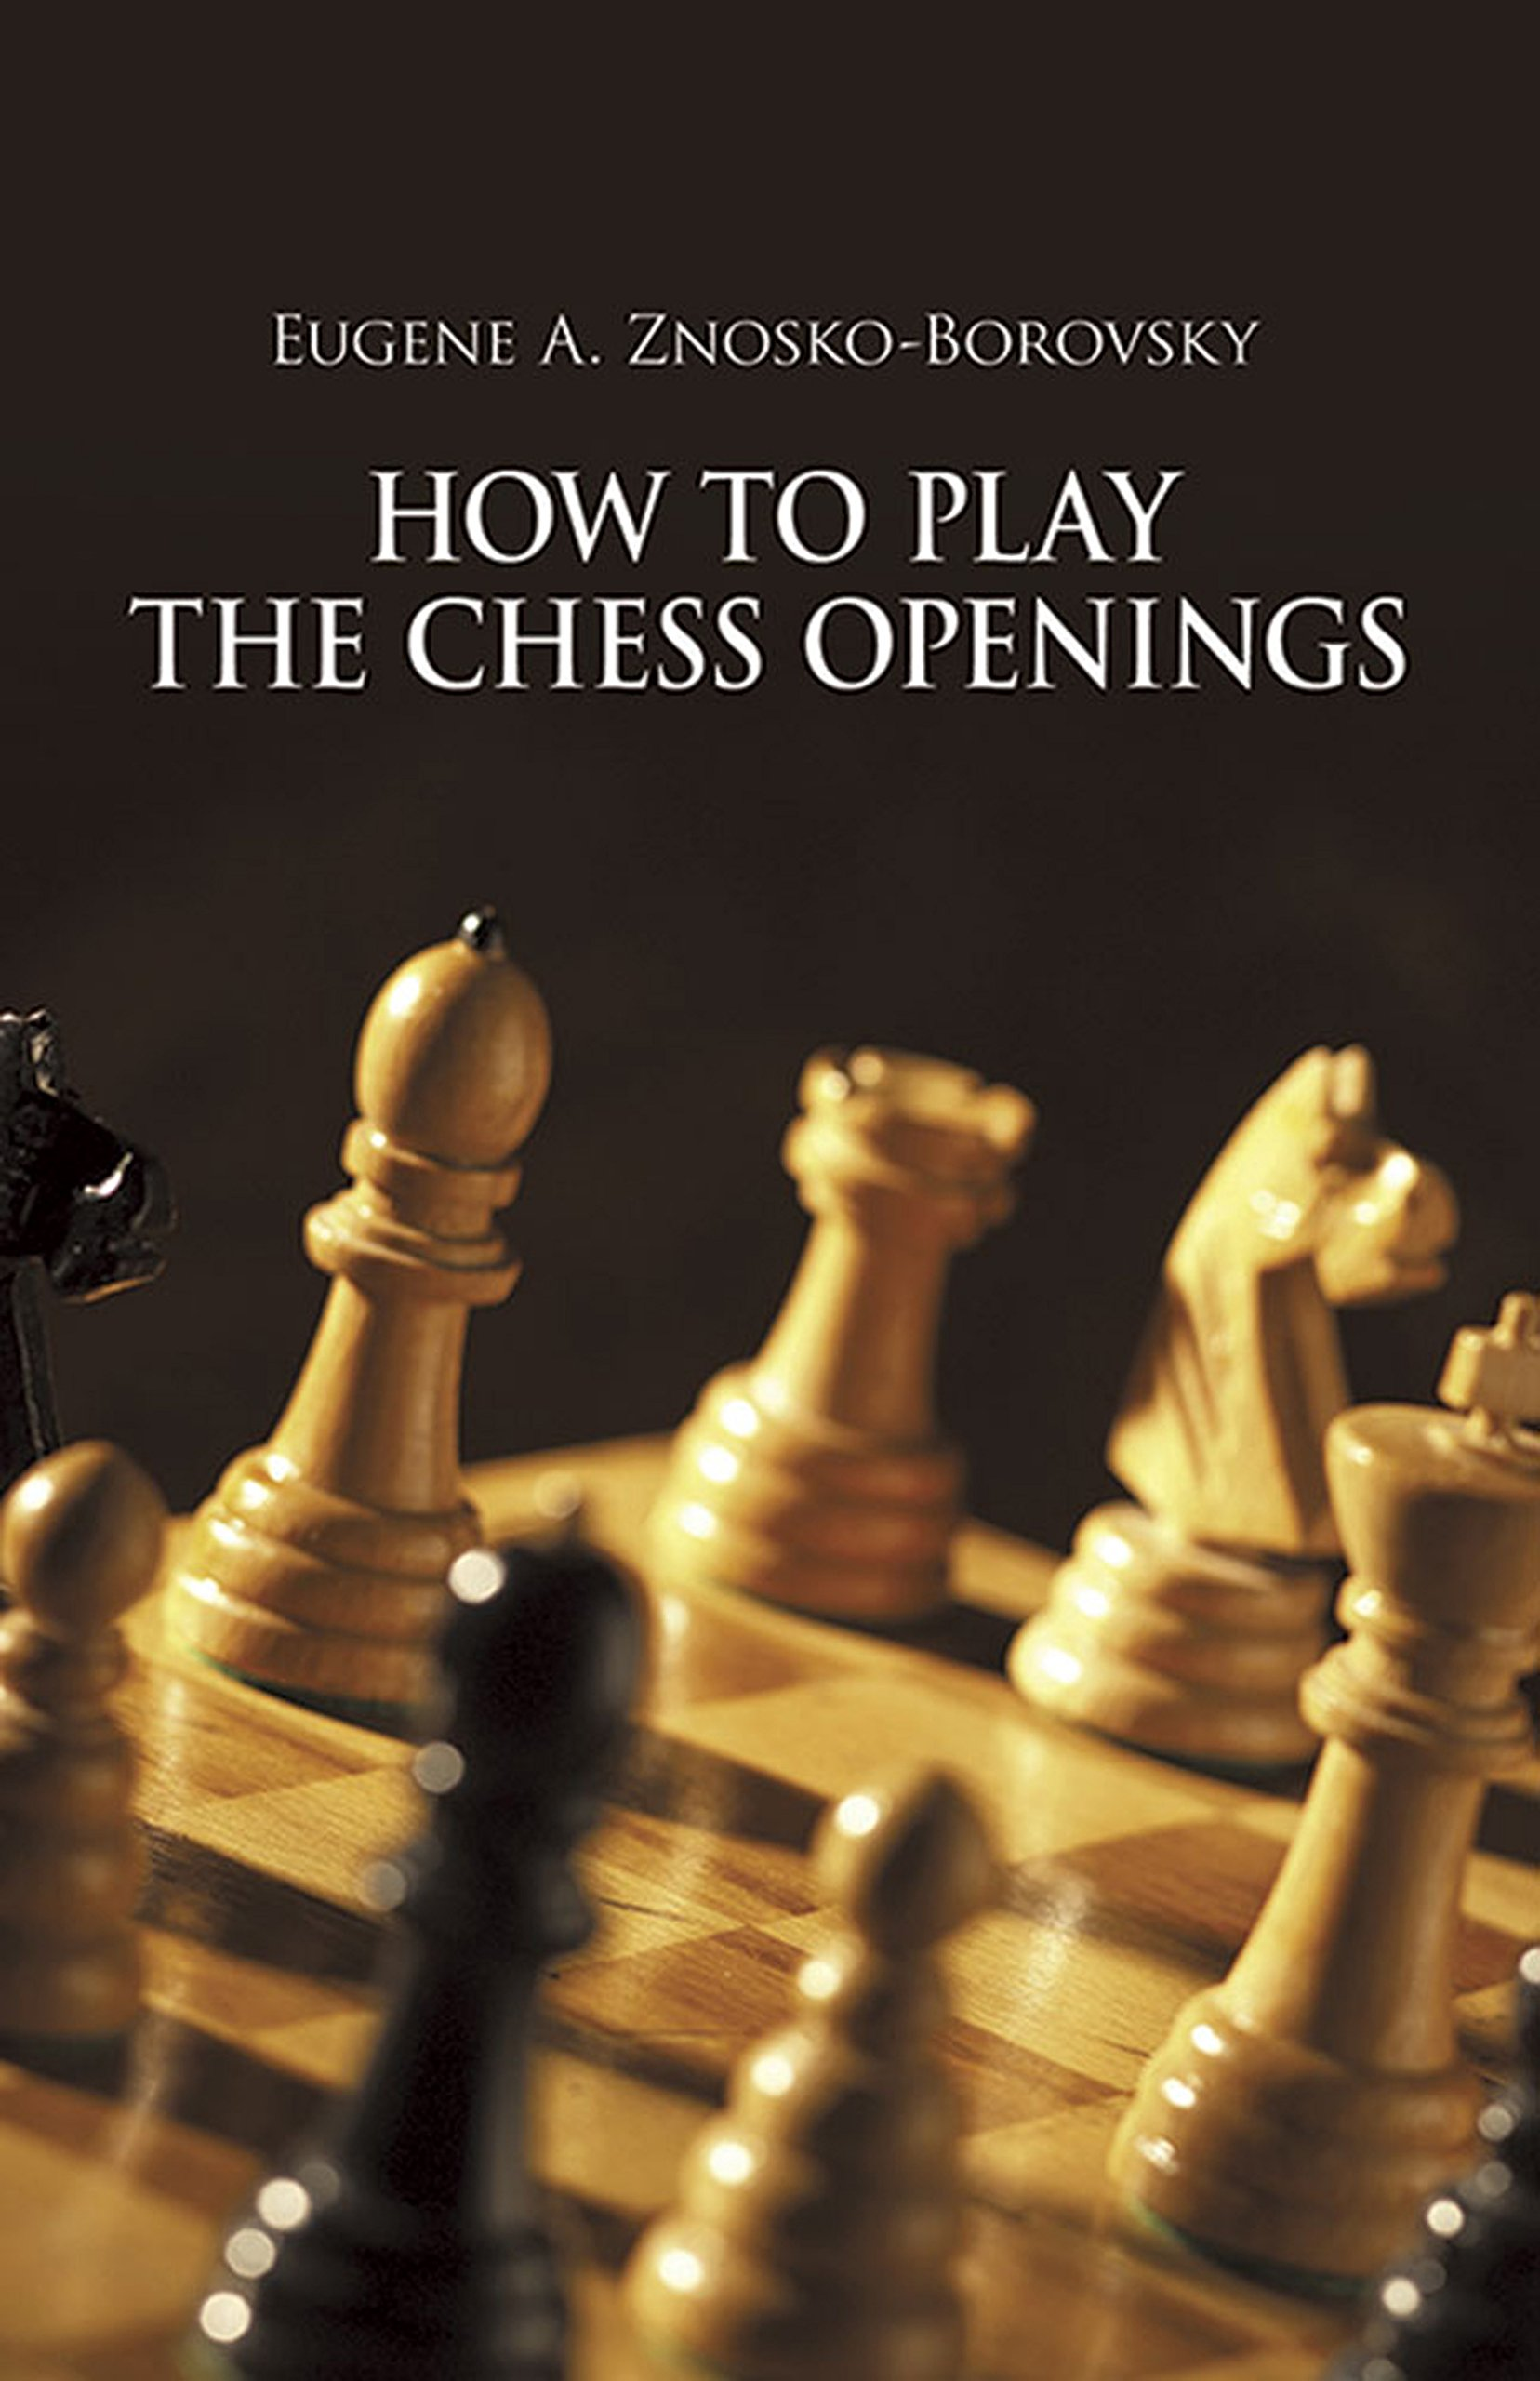 How to Play the Chess Openings (Dover Chess): Eugene Znosko-Borovsky ...